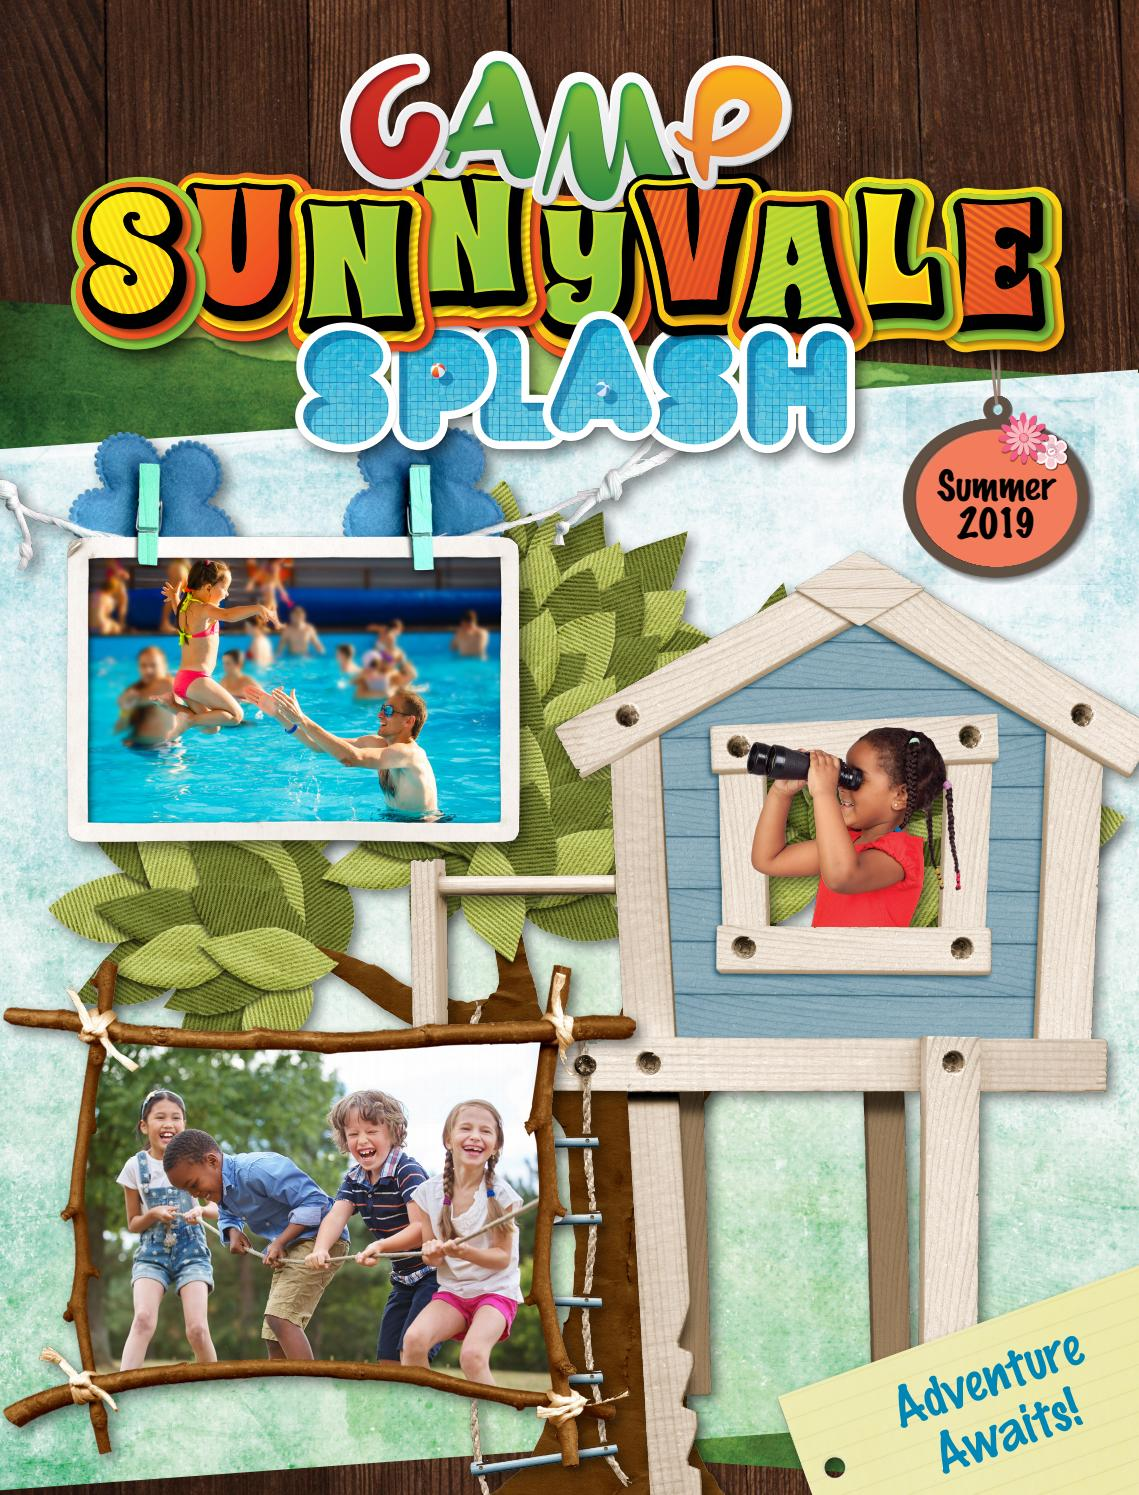 Camp Sunnyvale Splash Summer 2019 by City of Sunnyvale